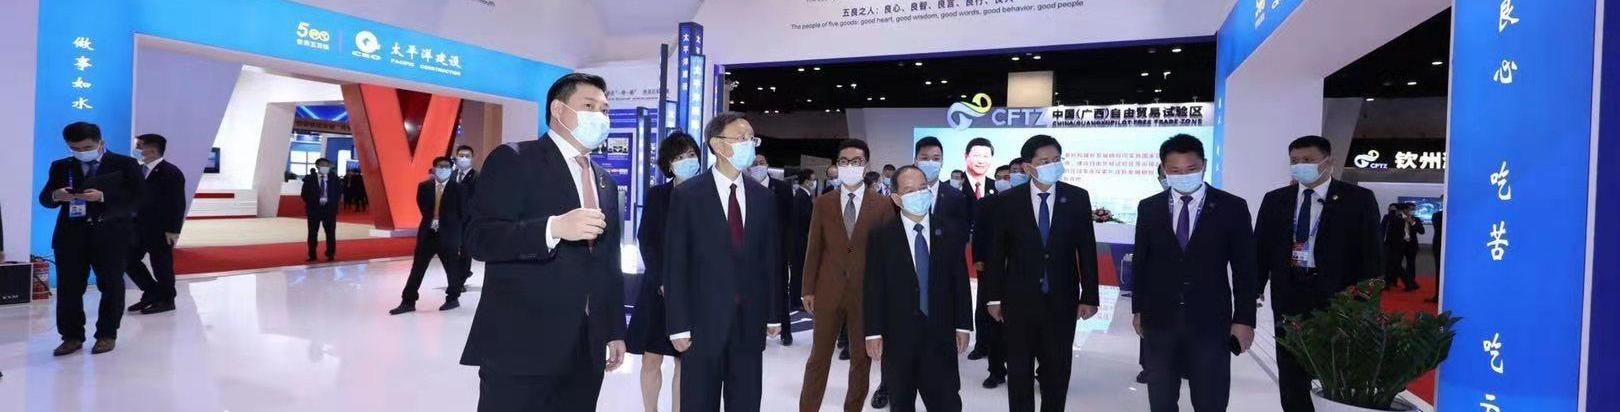 The Grand Opening of the 17th China-ASEAN Expo,Yang Jiechi Highly Affirms the Guangxi Strategy of Pacific Construction